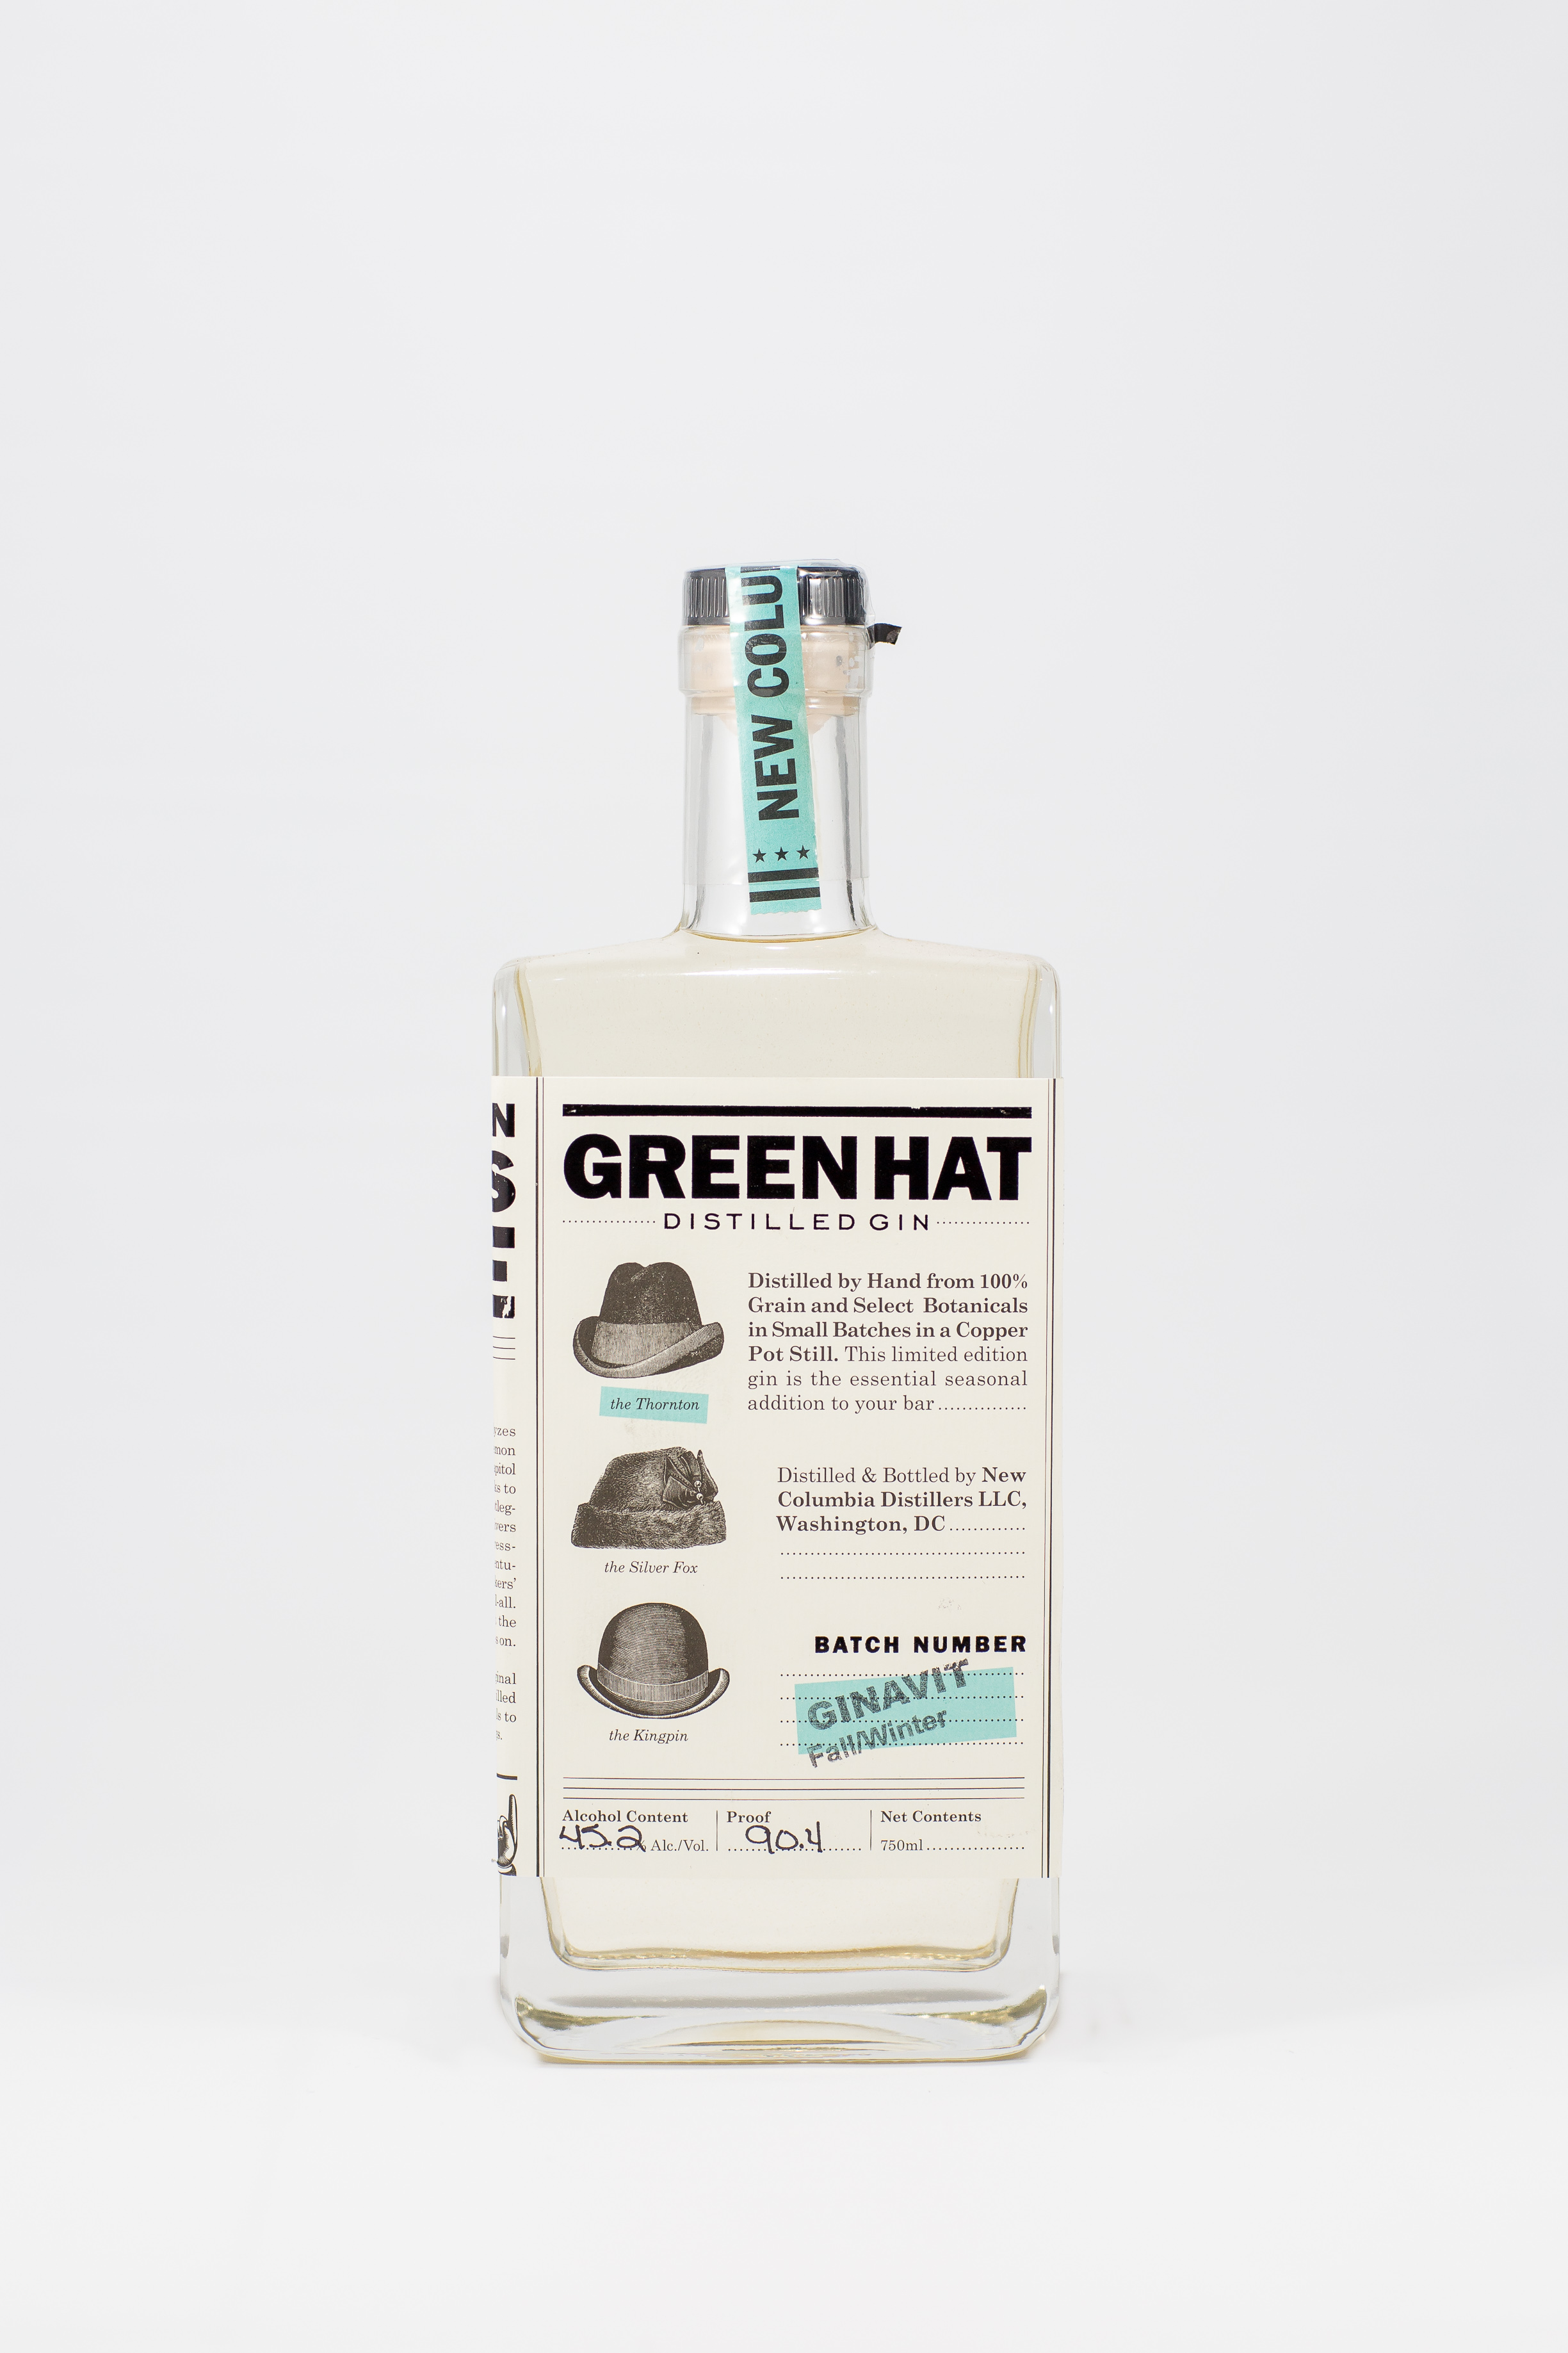 Fall/Winter Ginavit from Green Hat Gin // Price: $36-$38 // Buy at the distillery or at local retailers such as Cordial Craft Wine, Beer & Spirits // www.greenhatgin.com // (Image: Green Hat Gin)